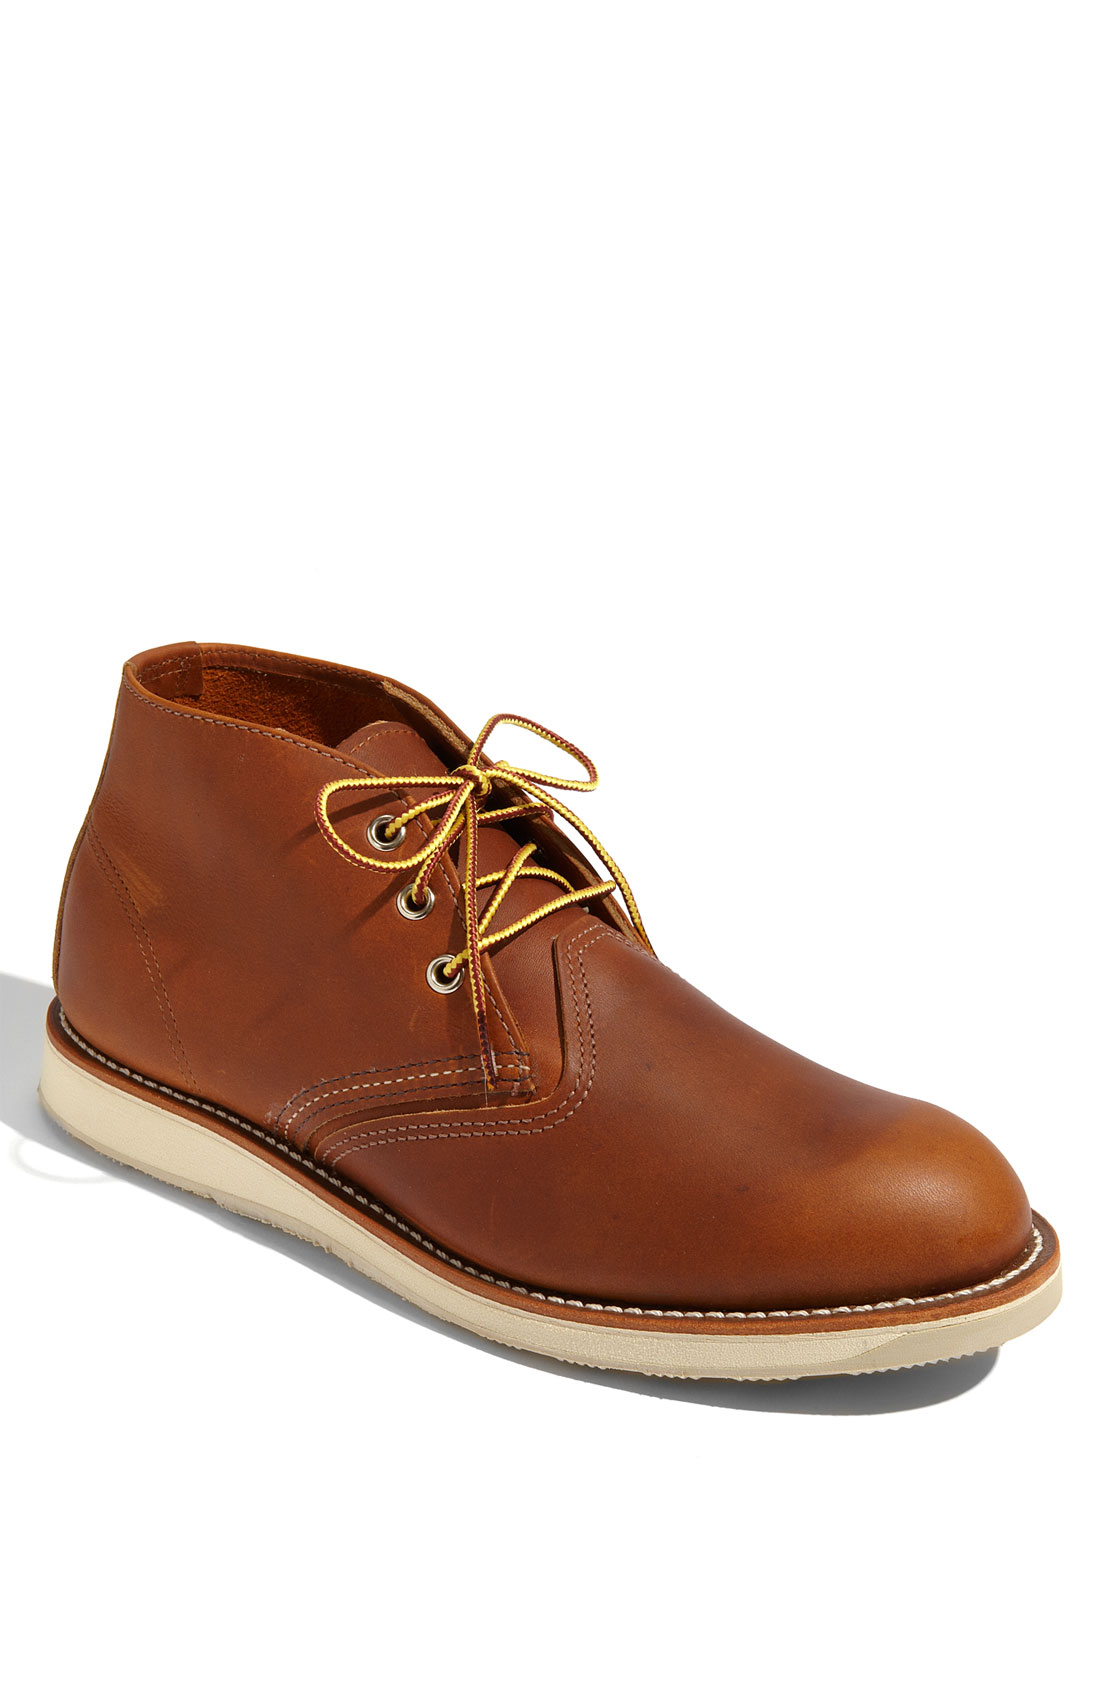 Red Wing Chukka Boots cSnFNh3K